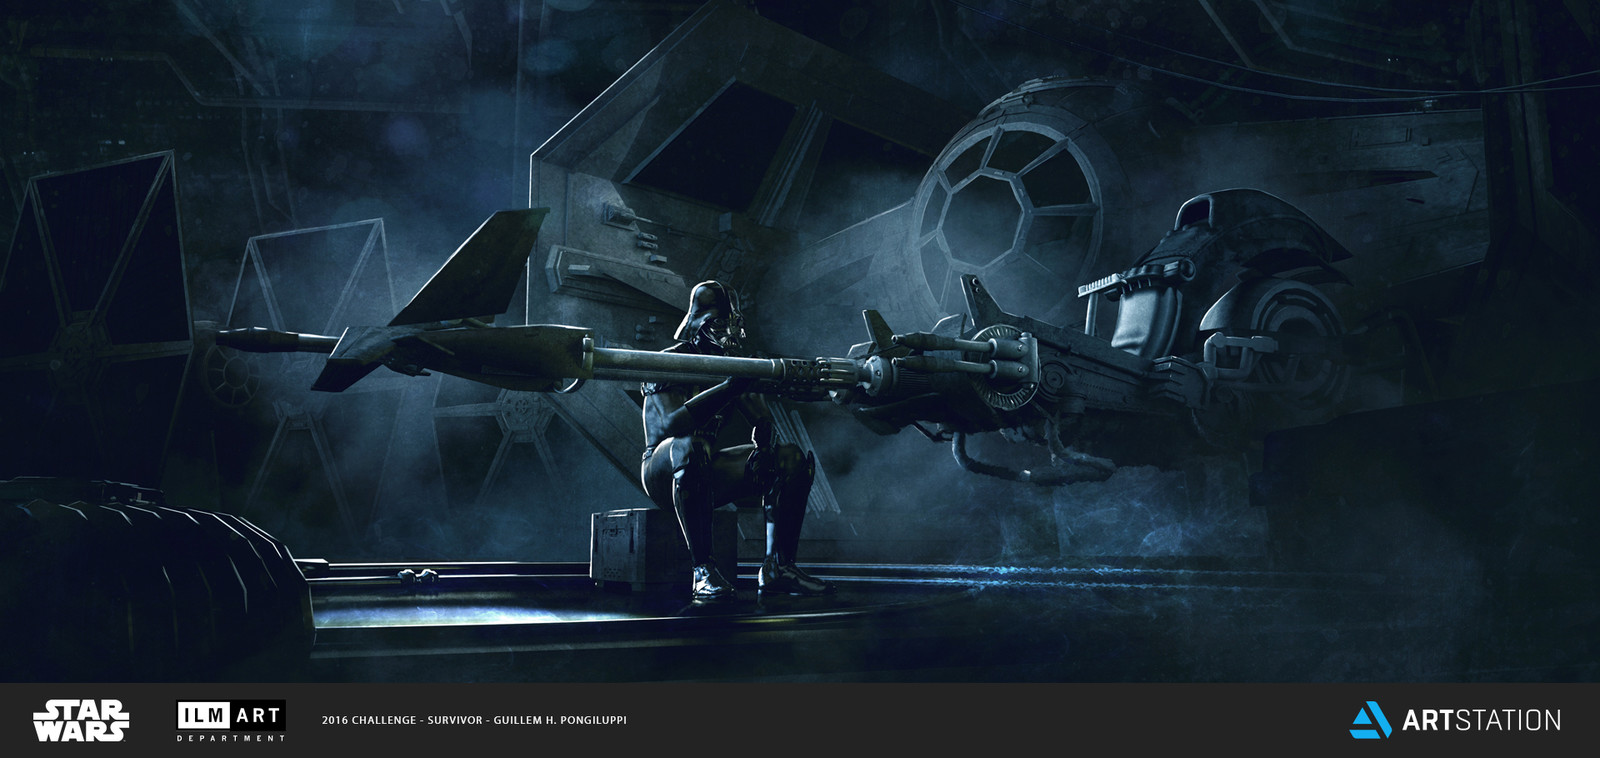 ILM Art Department Challenge - The Ride